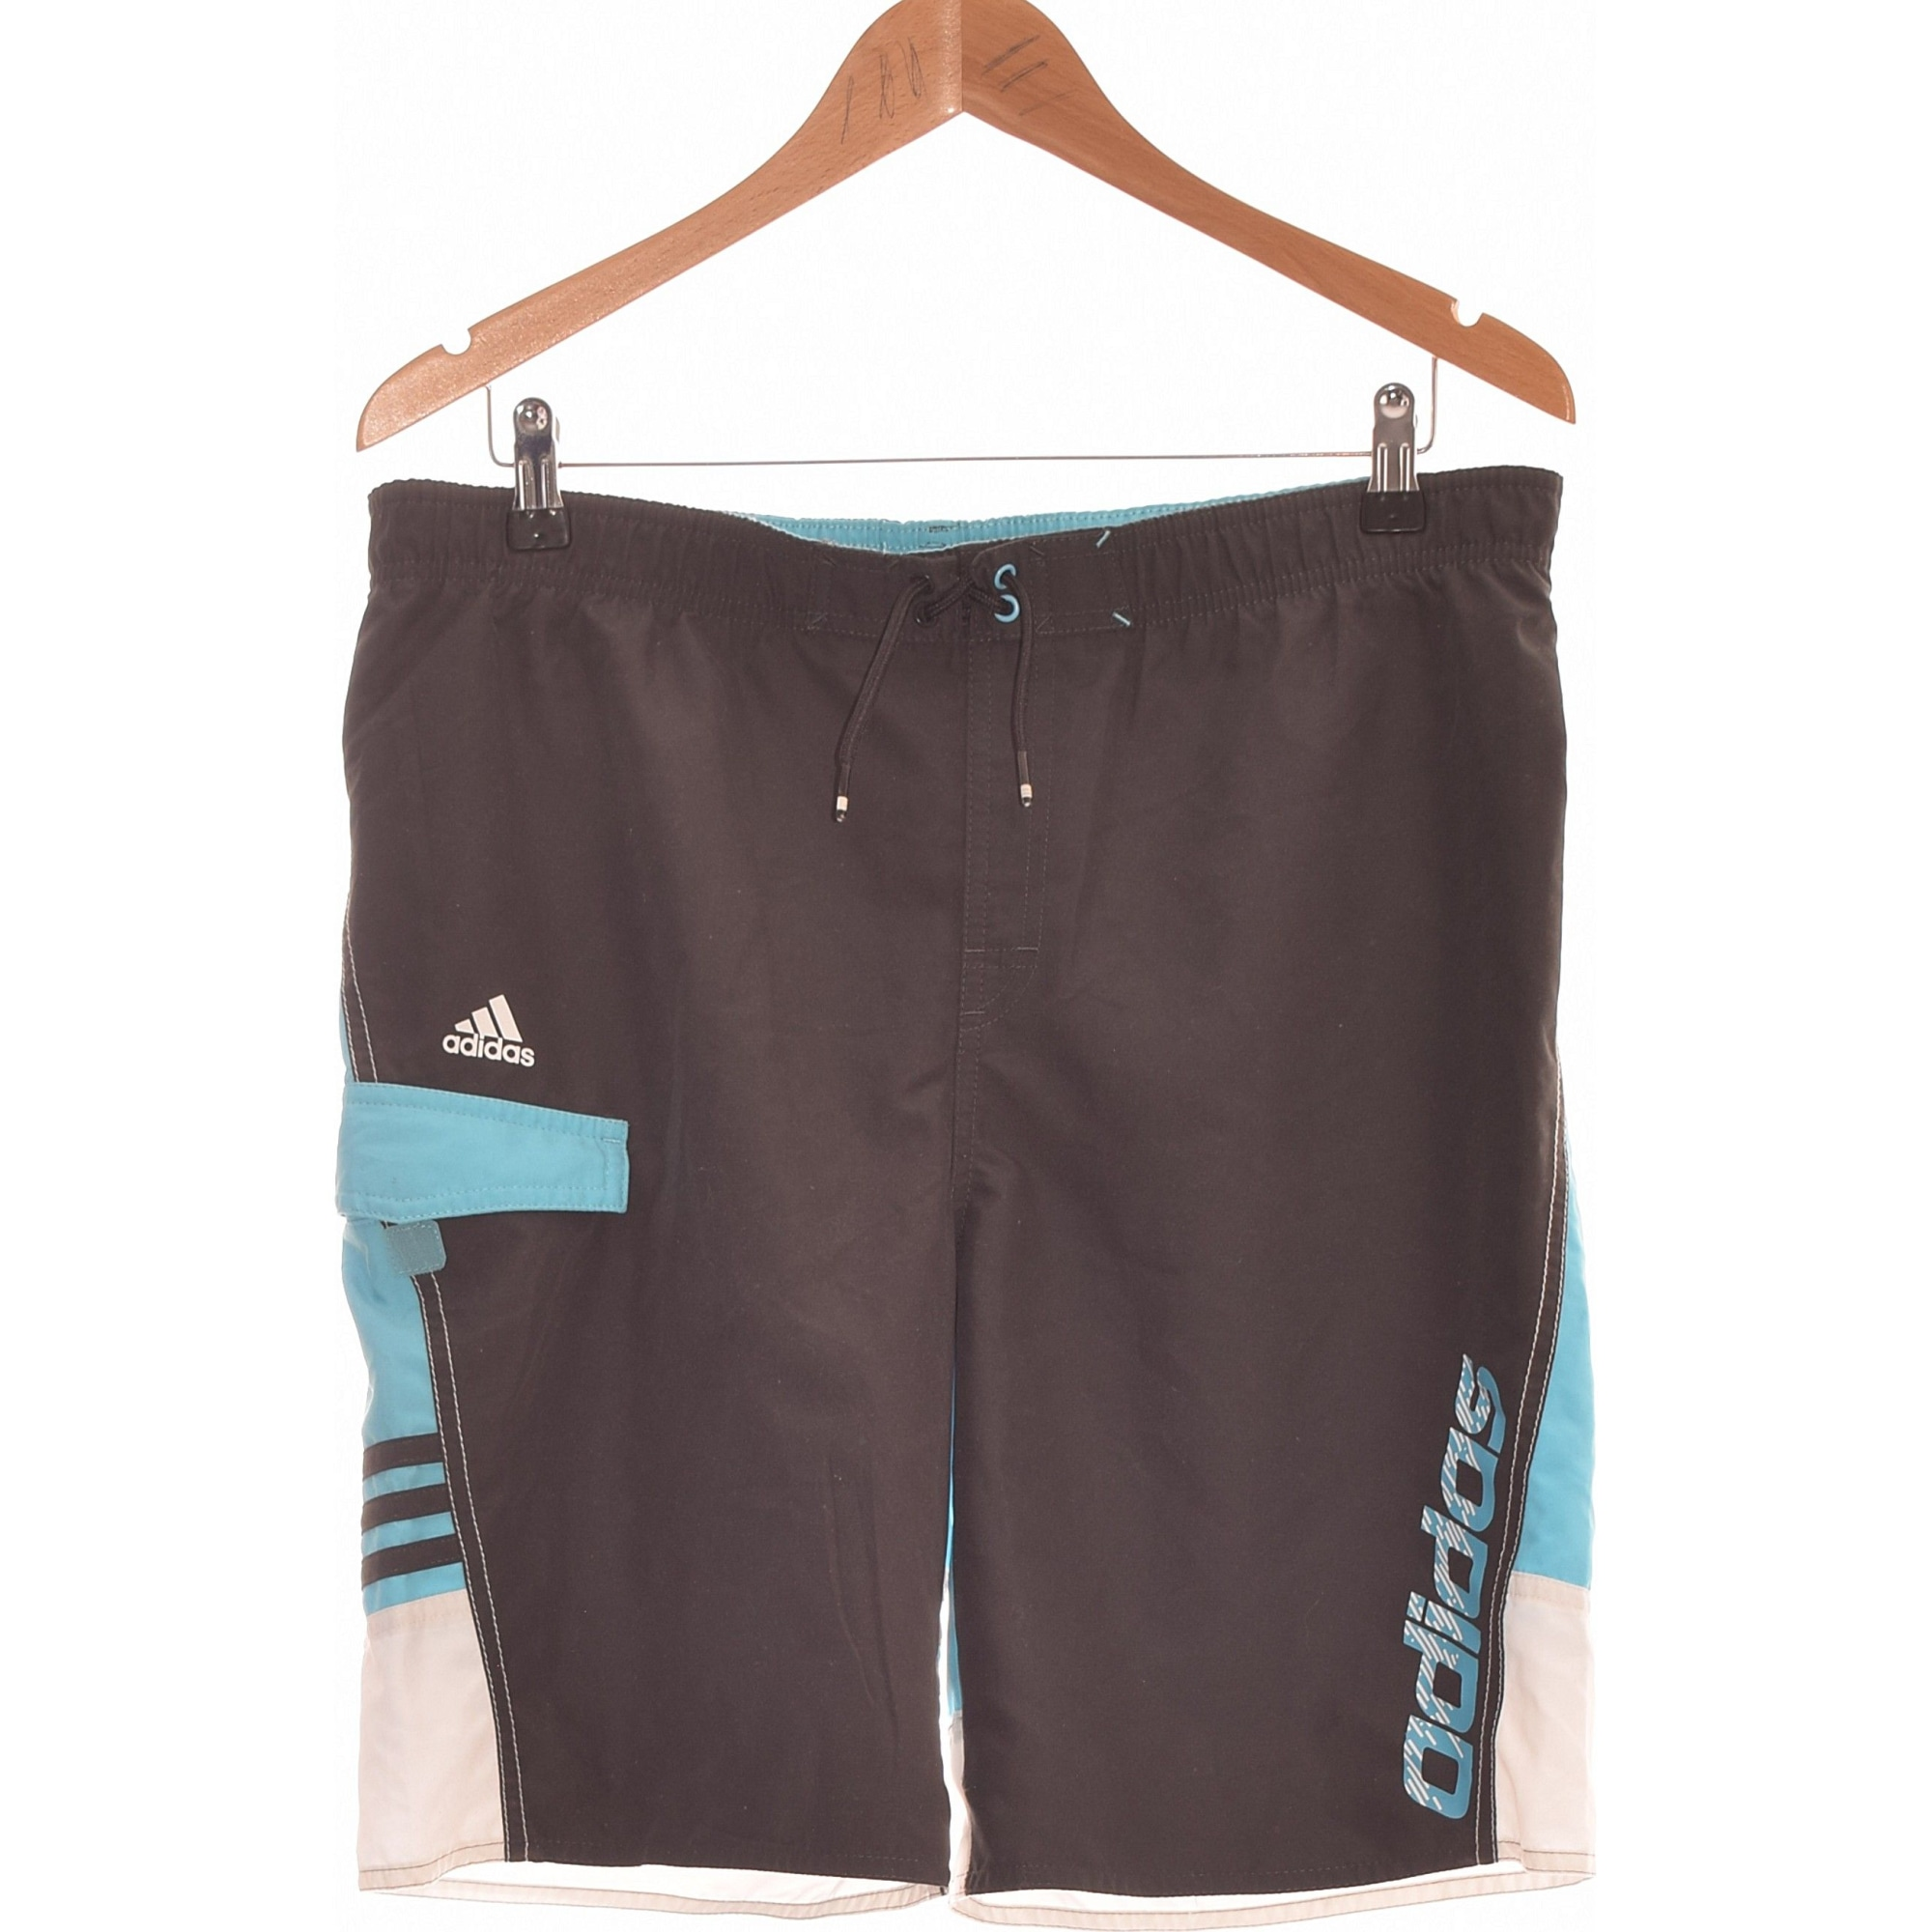 Shorts ADIDAS Grau, anthrazit